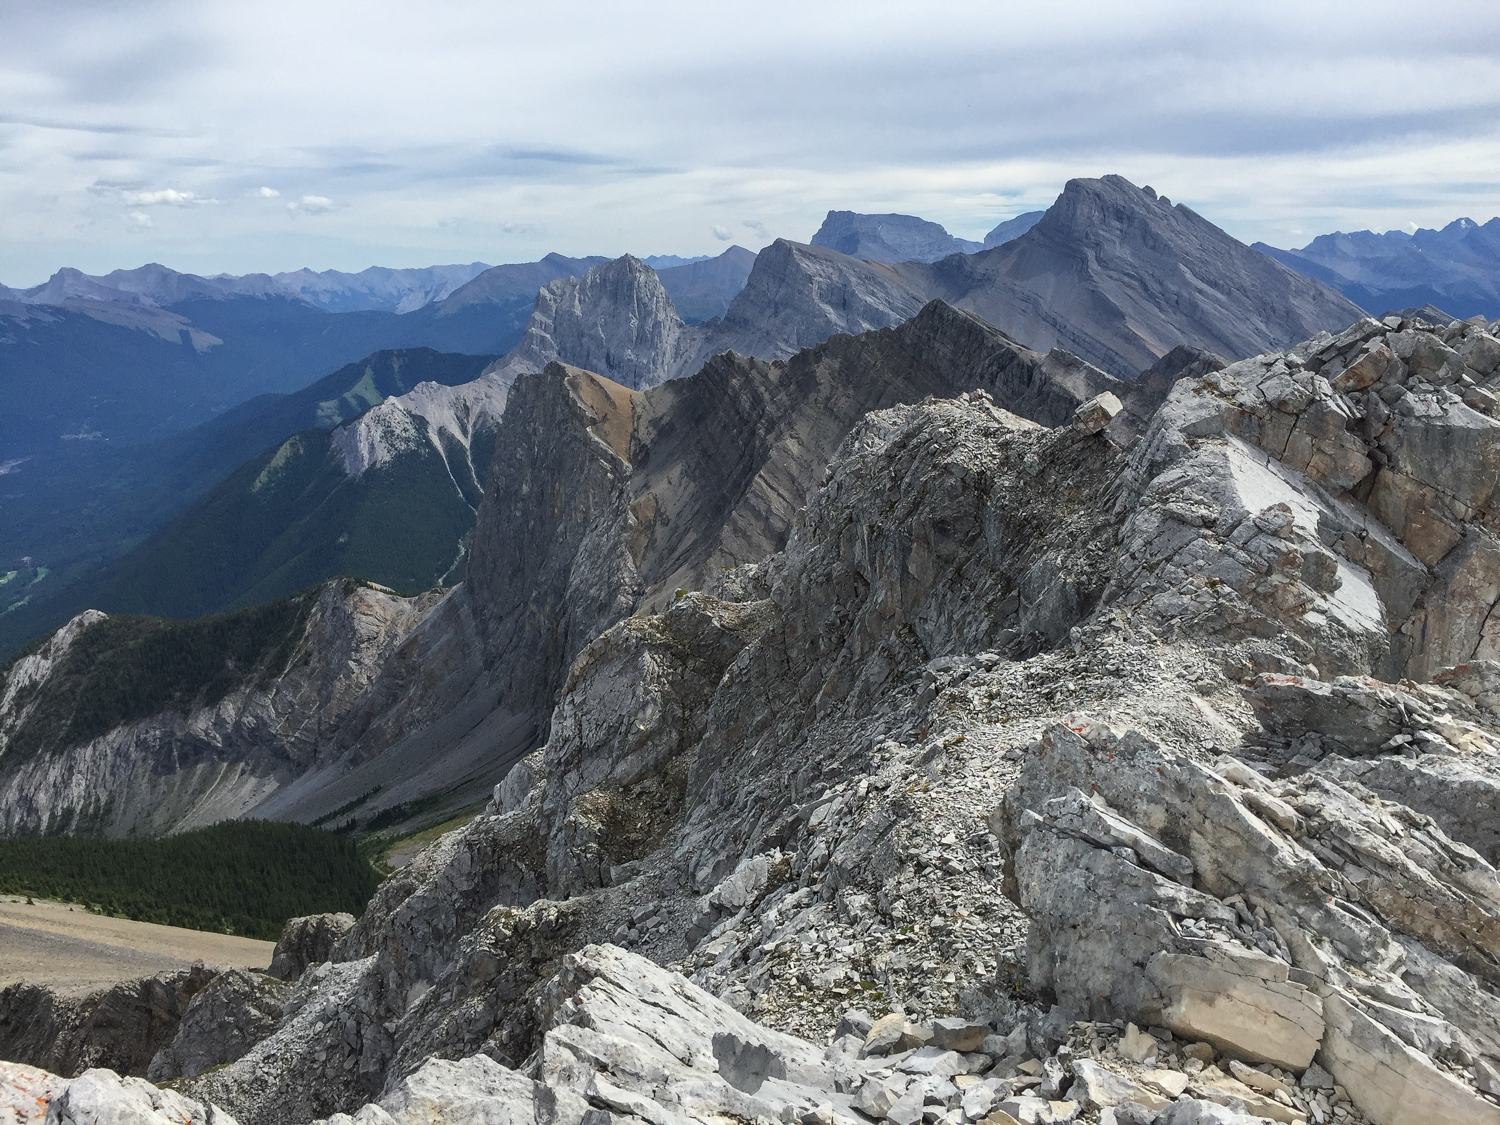 Southeast view from the summit